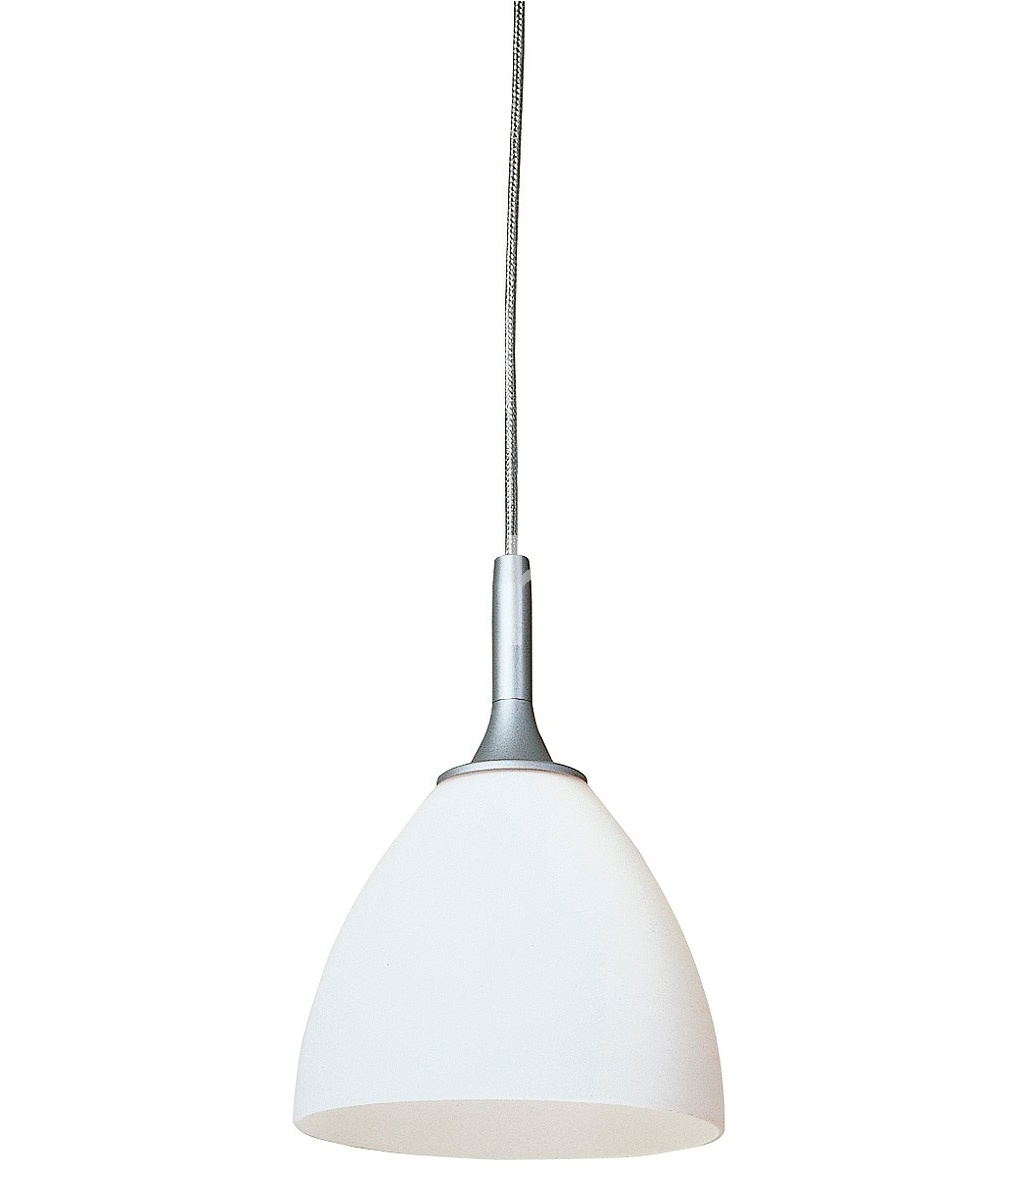 Orion Pendant For Silvergrey Low Voltage Track